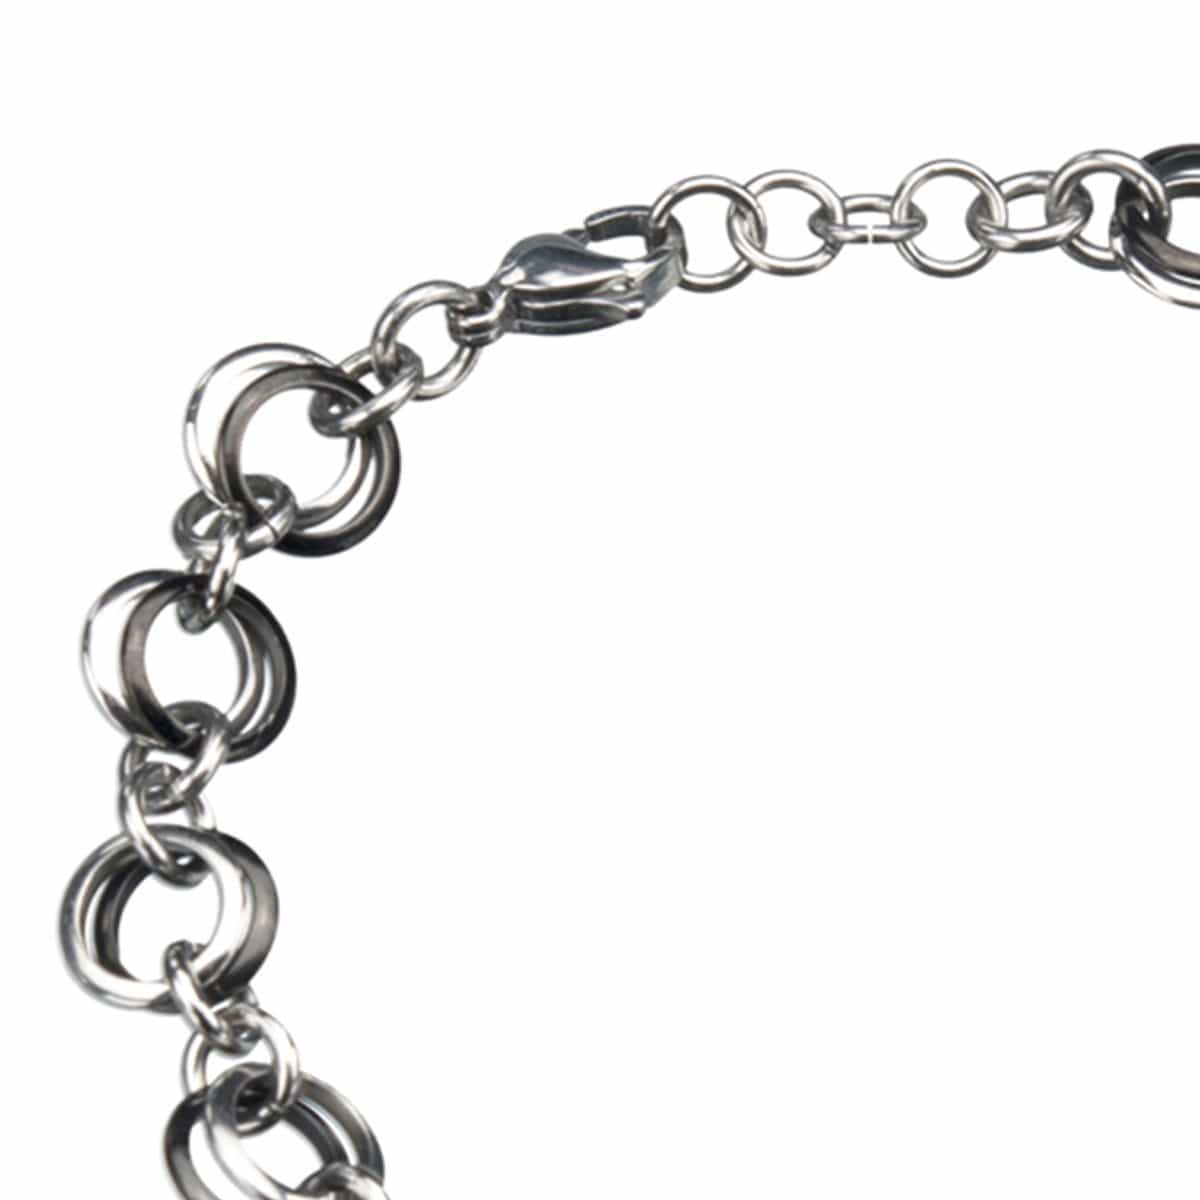 Black & Silver Stainless Steel Multi-Link Polished Bracelet